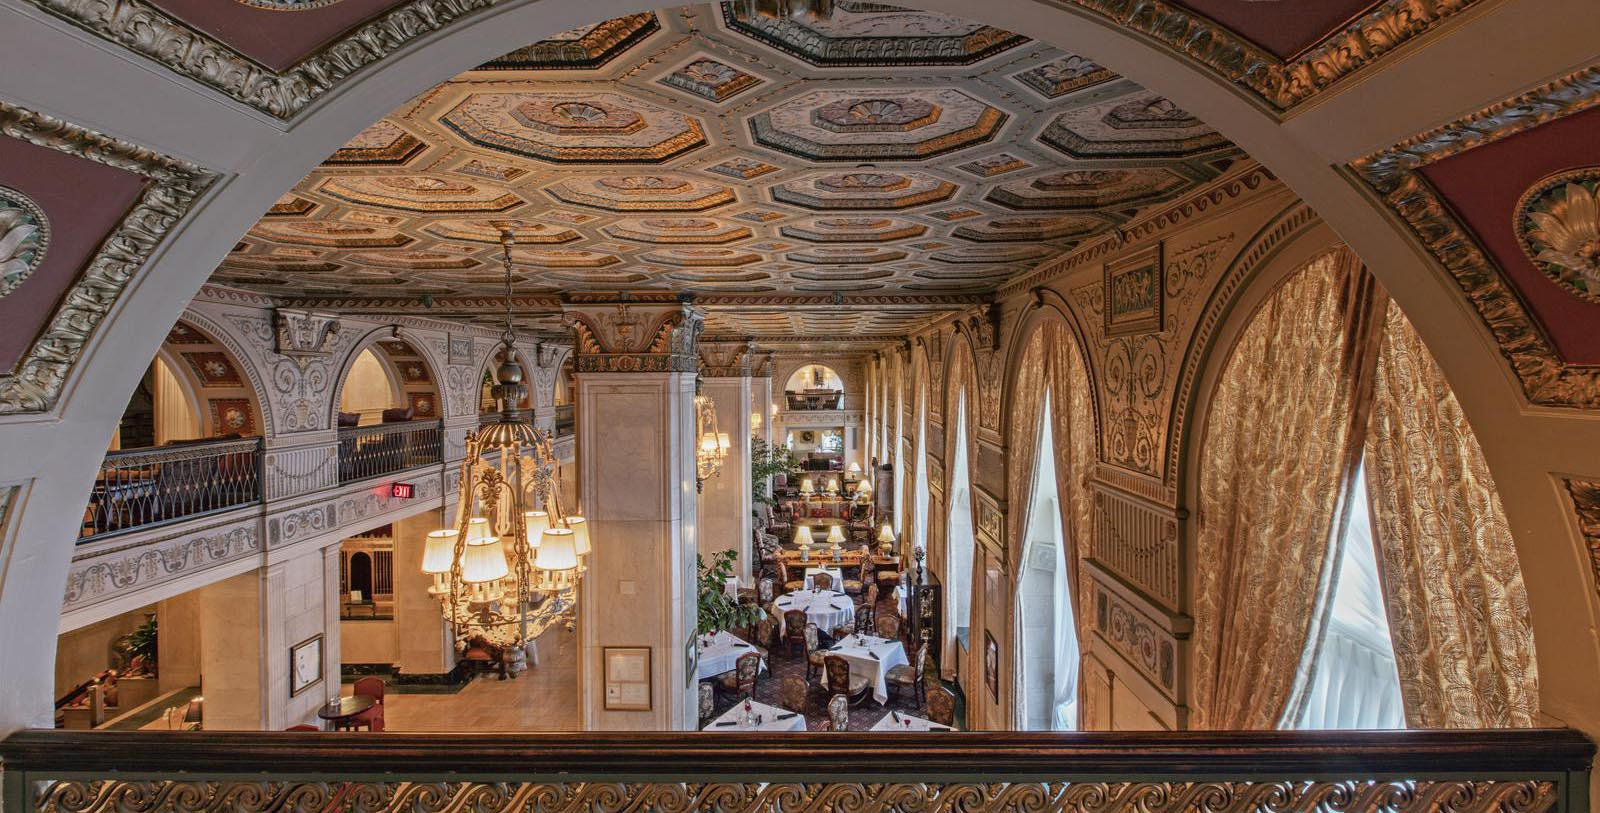 Image of Ceiling The Brown Hotel, 1923, Member of Historic Hotels of America, in Louisville, Kentucky, Discover